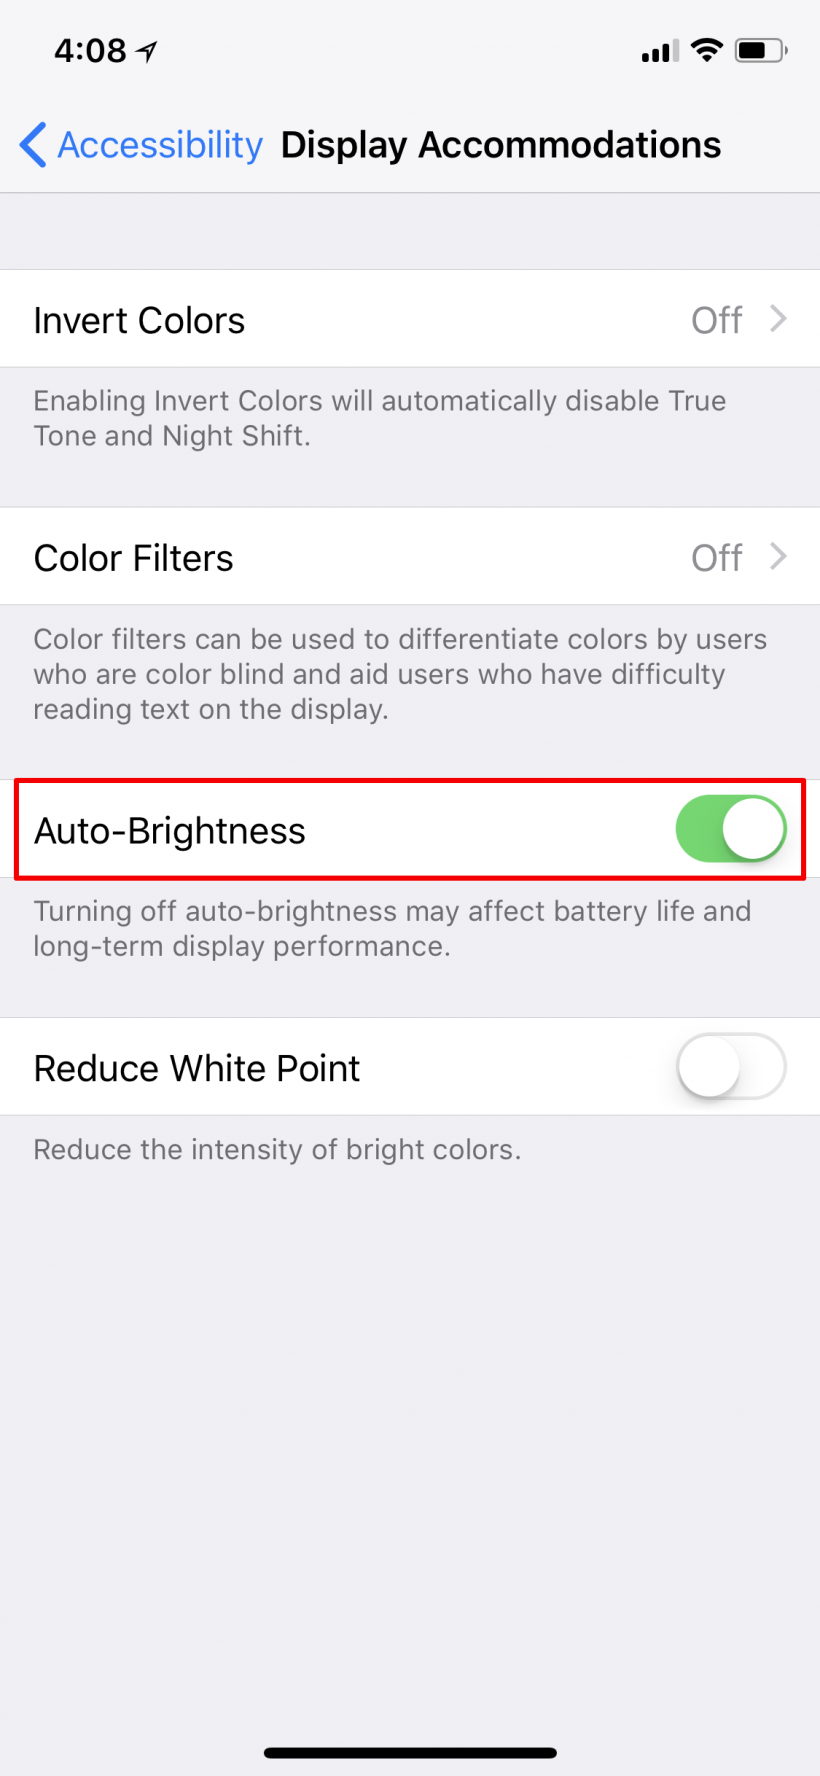 How to turn Auto-Brightness on or off in iOS 11 on iPhone and iPad.